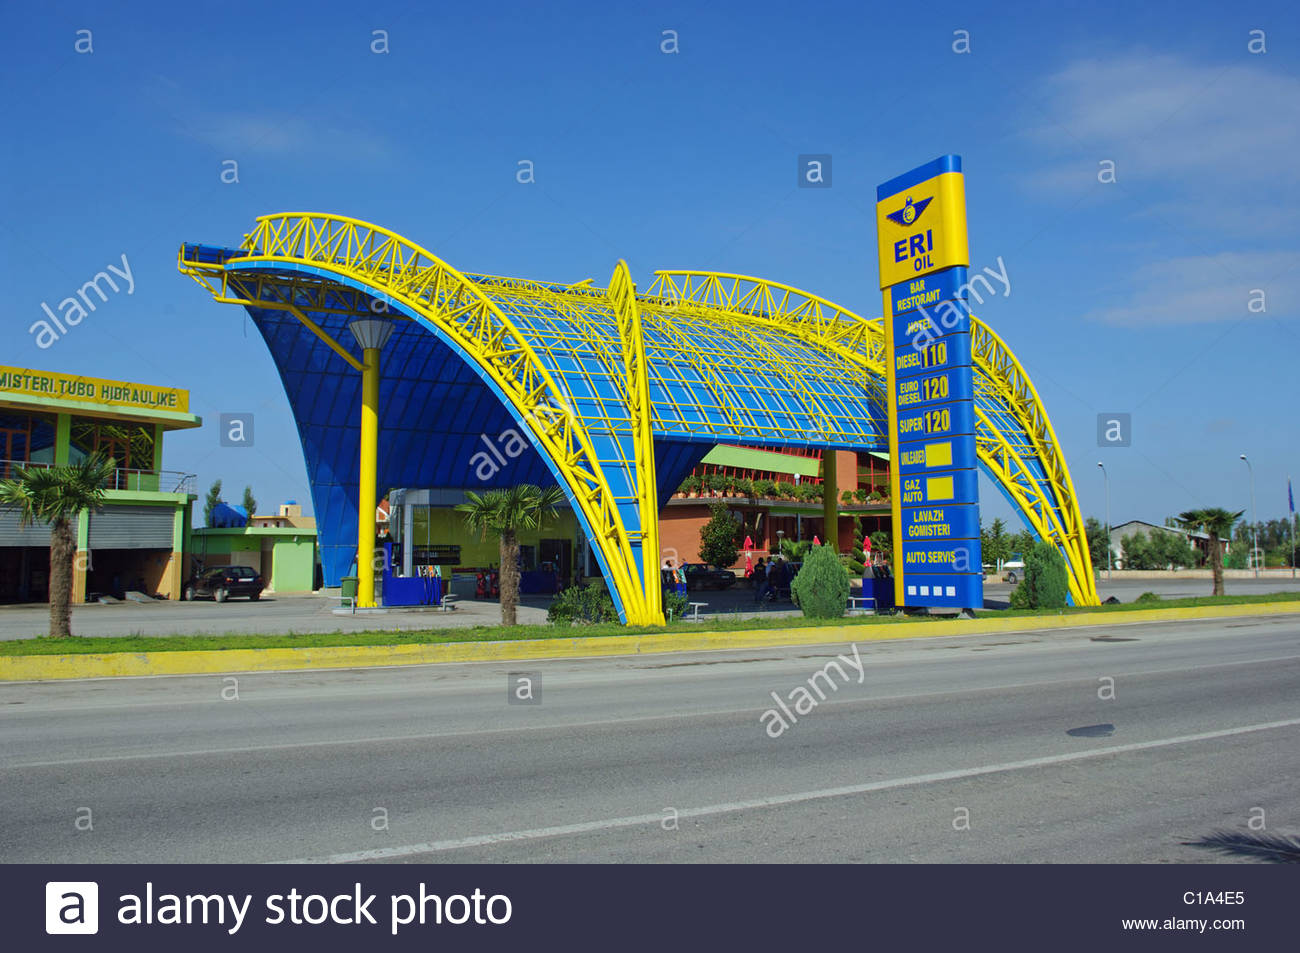 Petrol Station from Durres E762 Road Albania - Stock Image